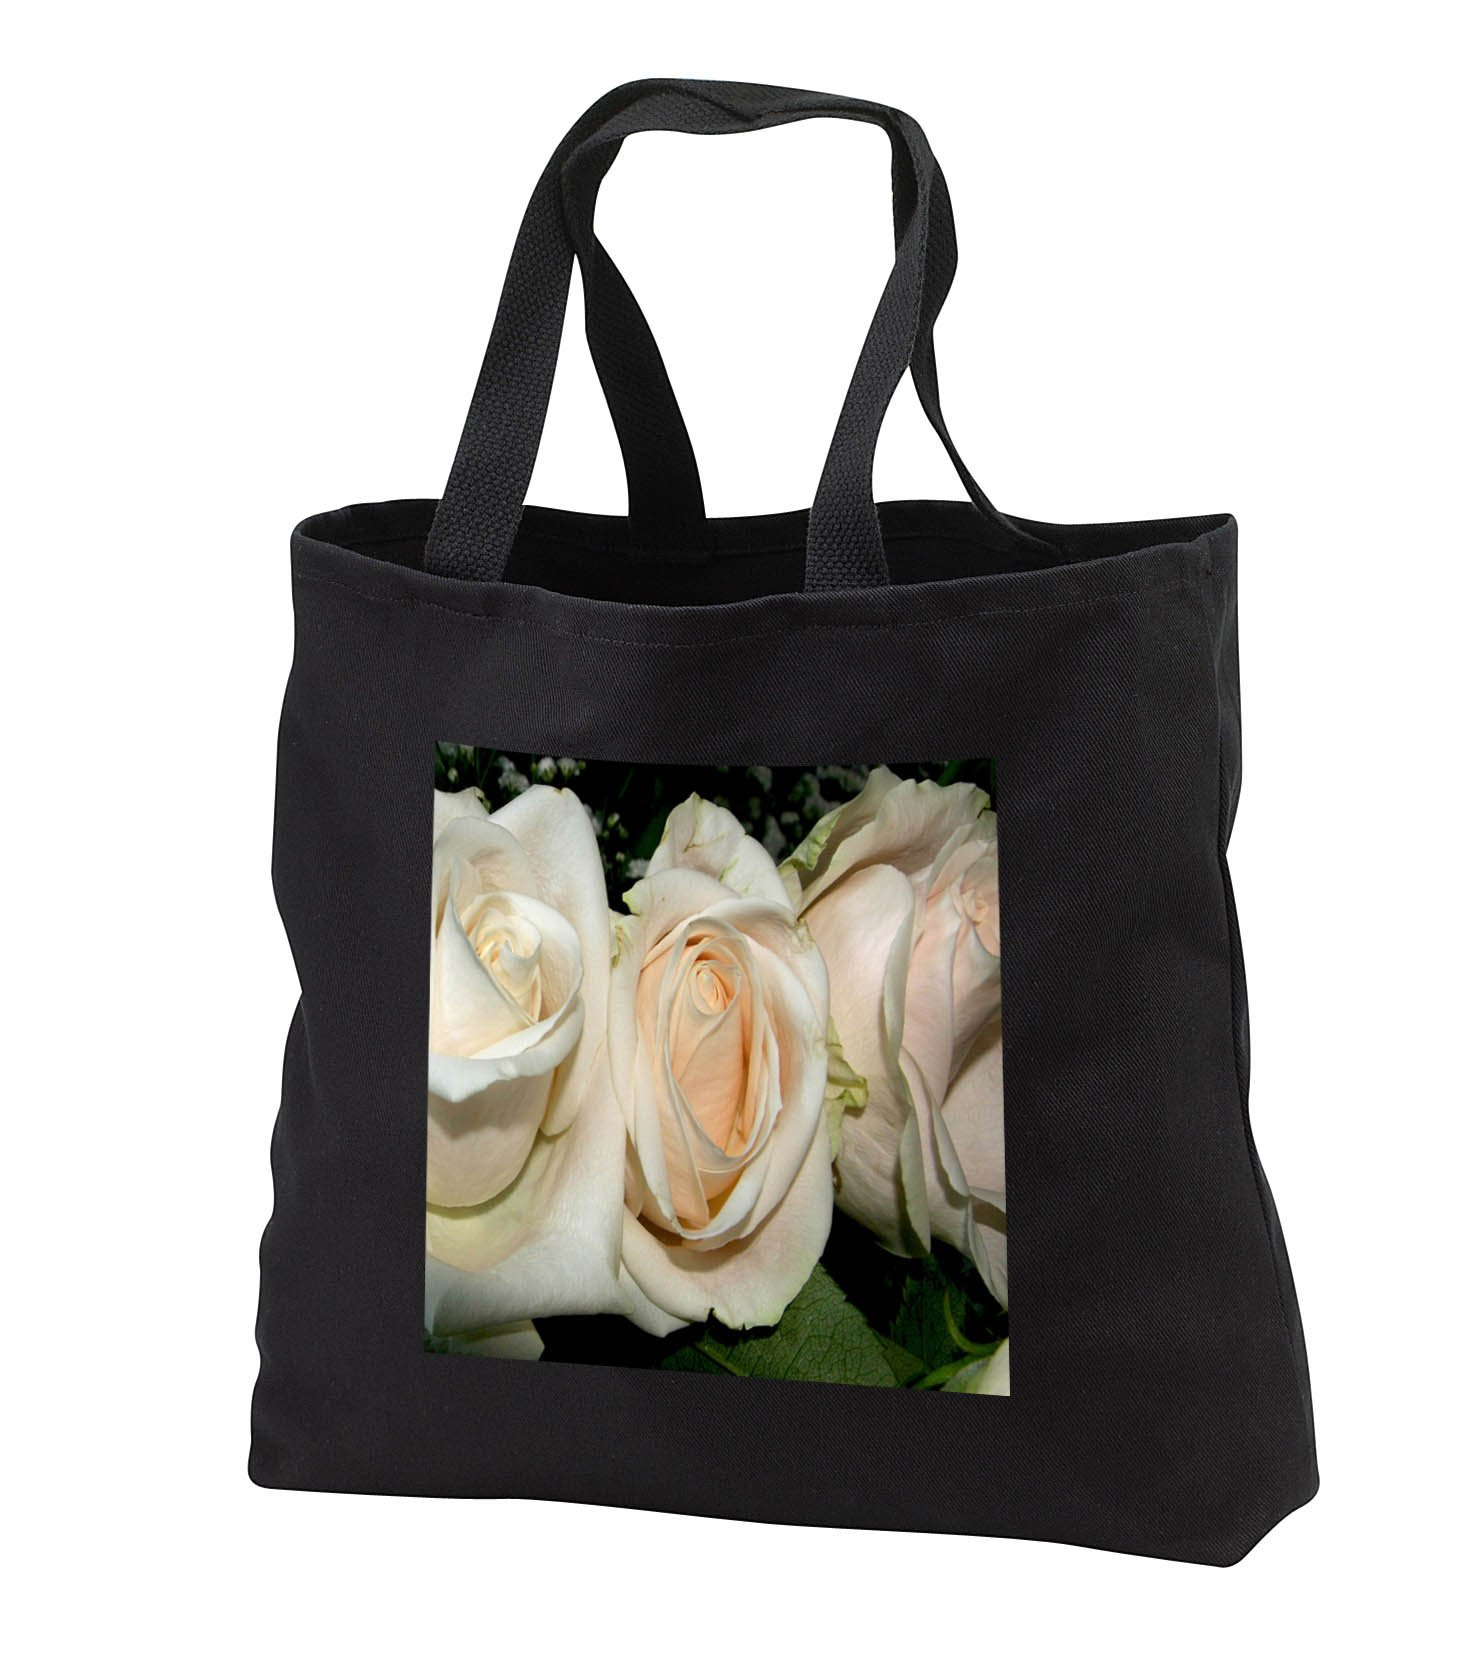 TDSwhite – Summer Seasonal Nature Photos - Floral White Wedding Roses - Tote Bags - Black Tote Bag 14w x 14h x 3d (tb_284578_1)